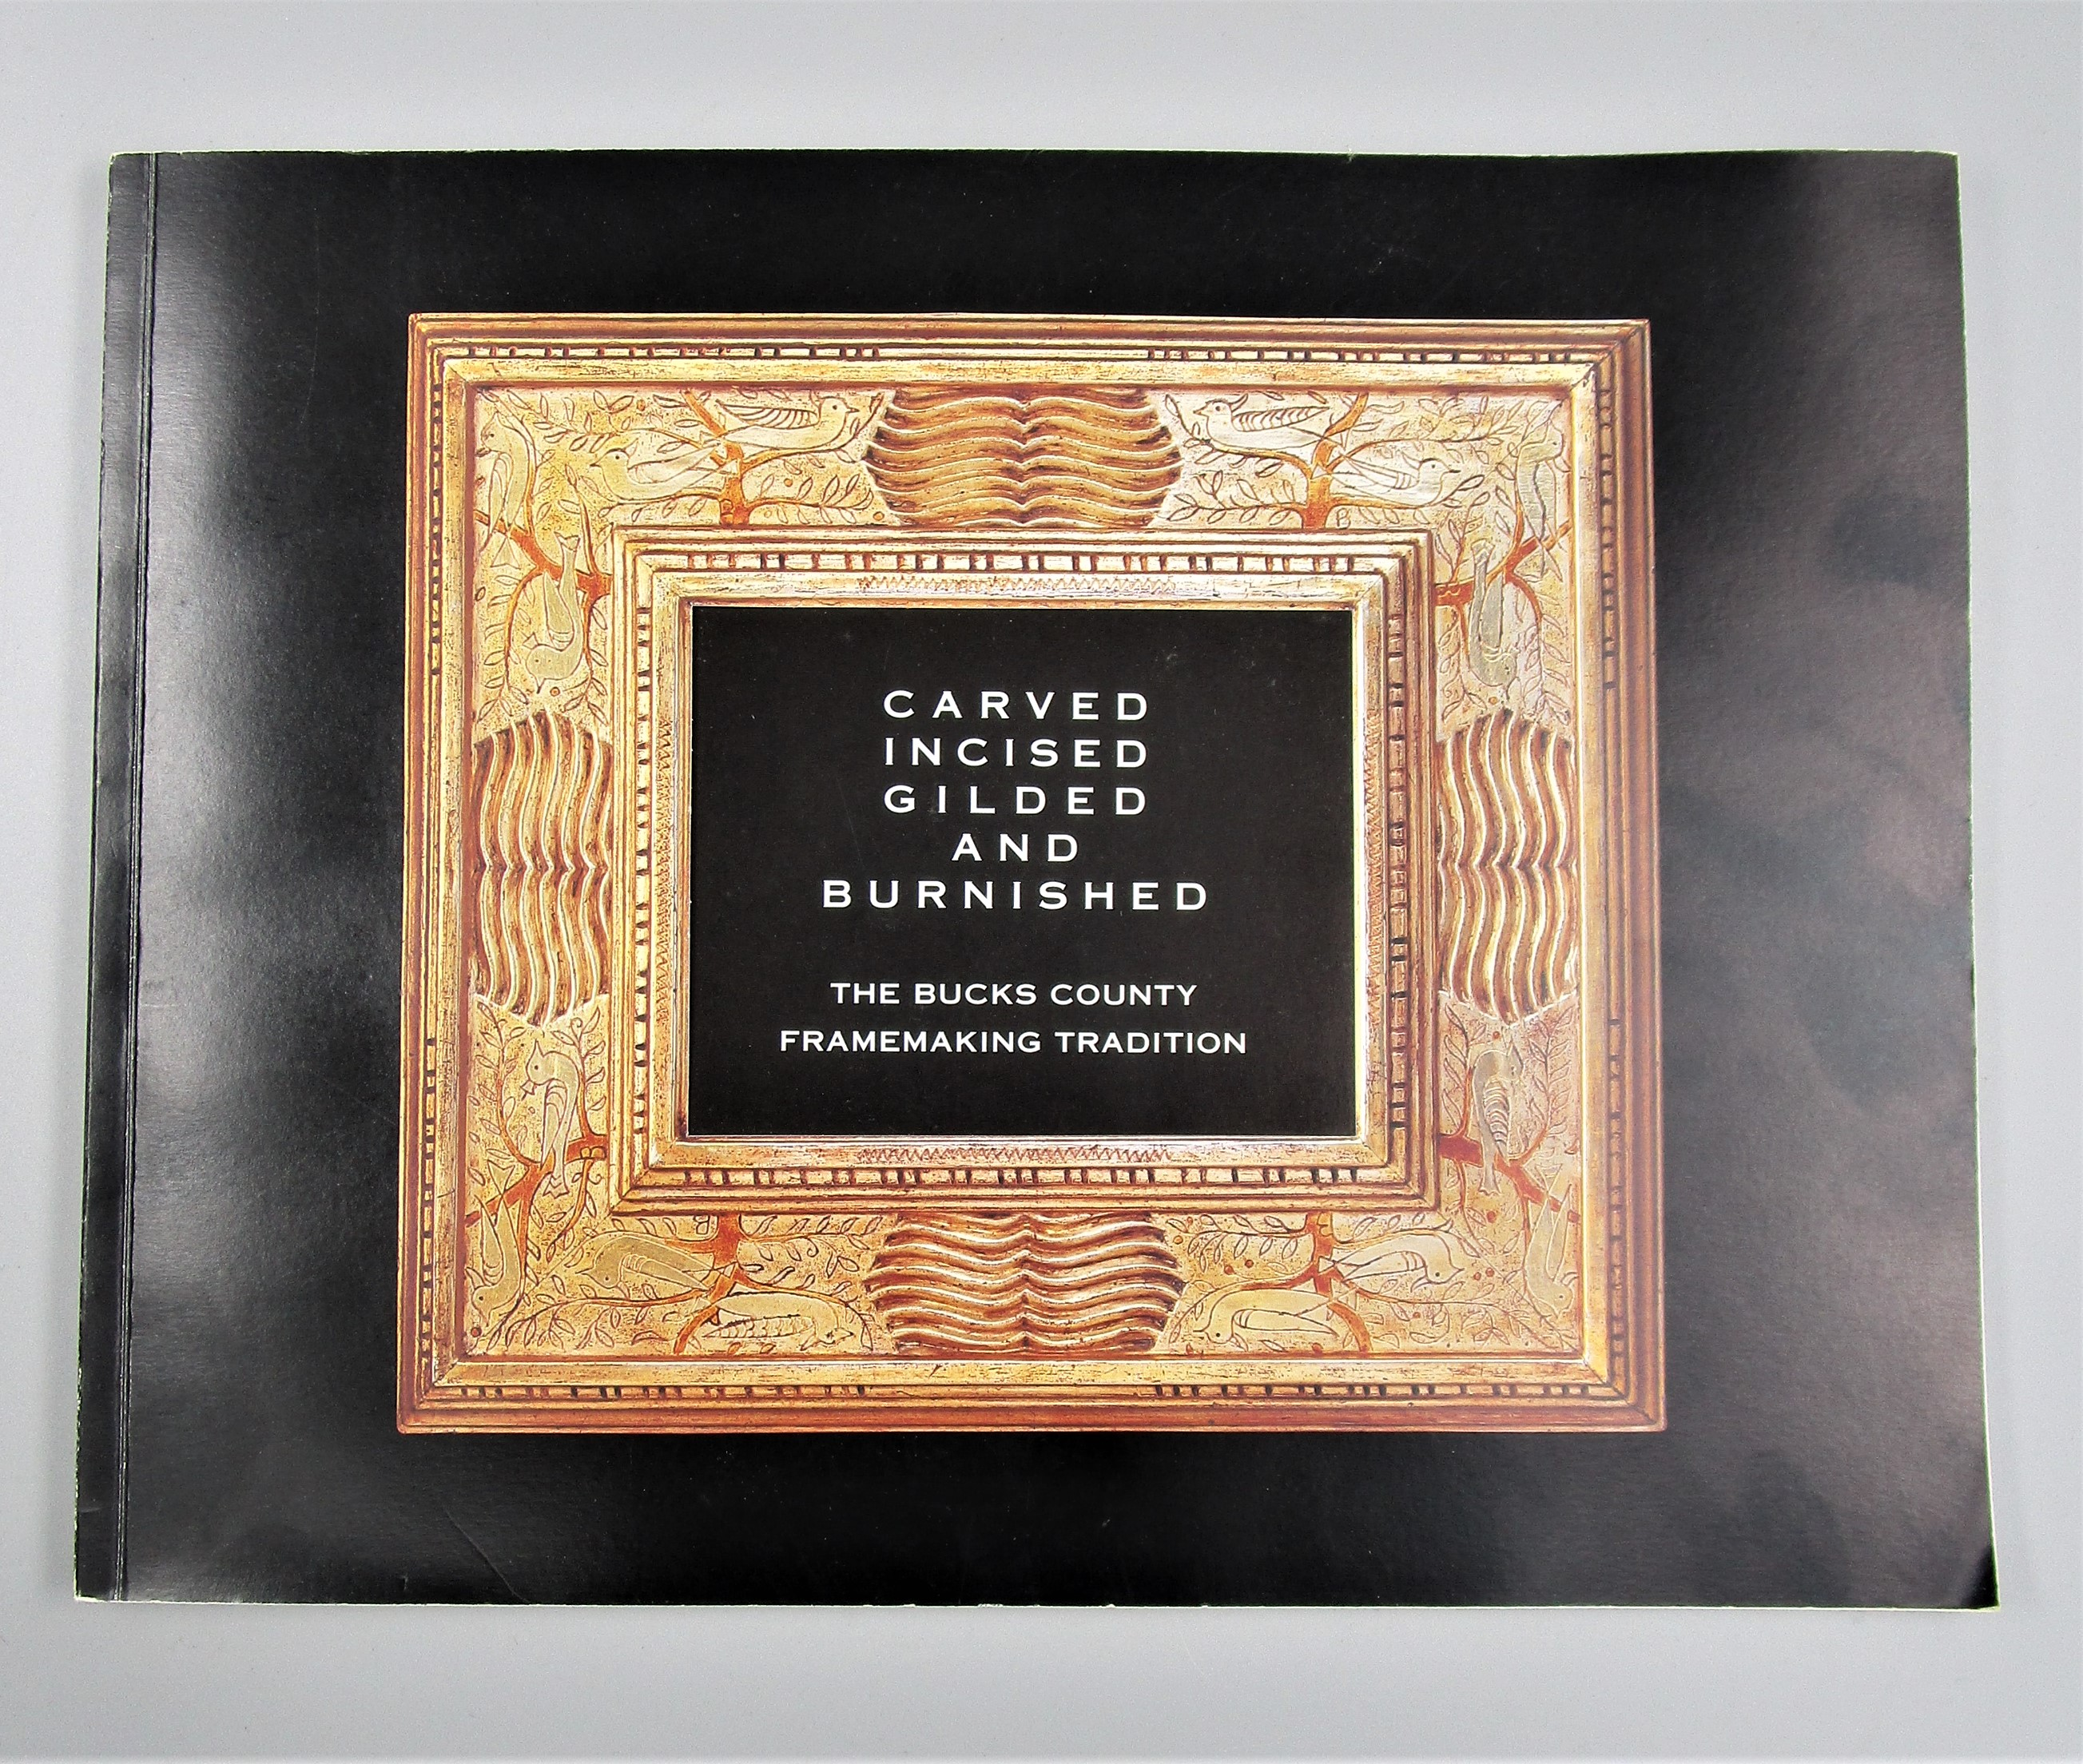 CARVED, INCISED, GILDED & BURNISHED: BUCKS CTY FRAMEMAKING, by E.J. Smith - 2000